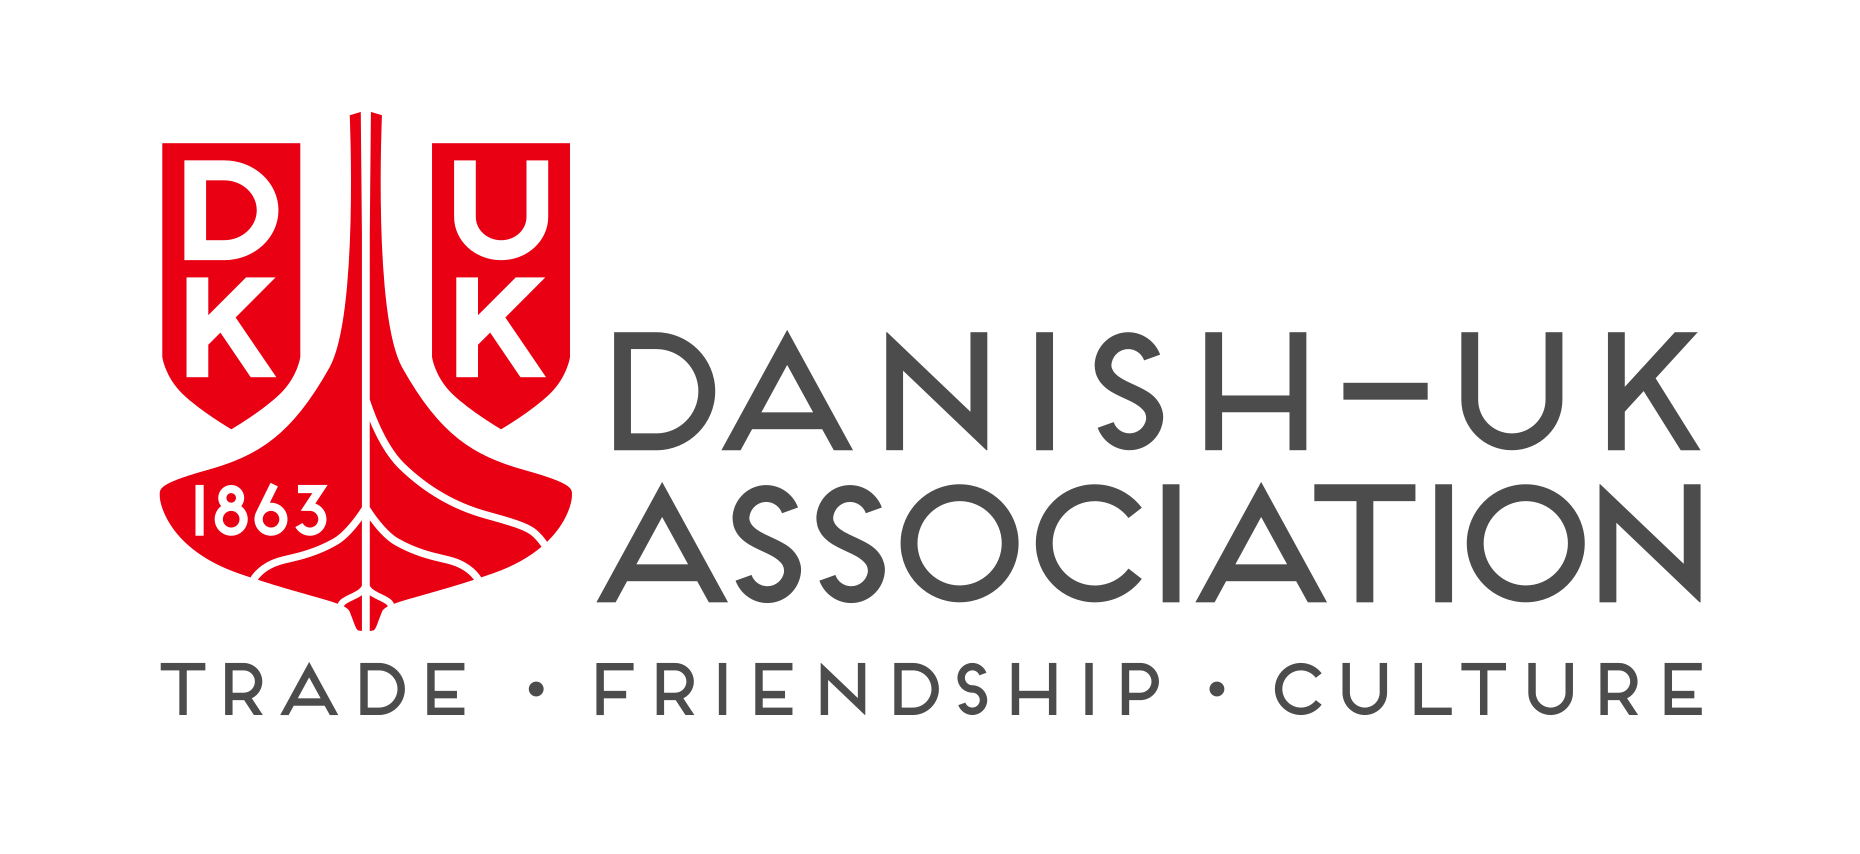 The Danish-UK Association